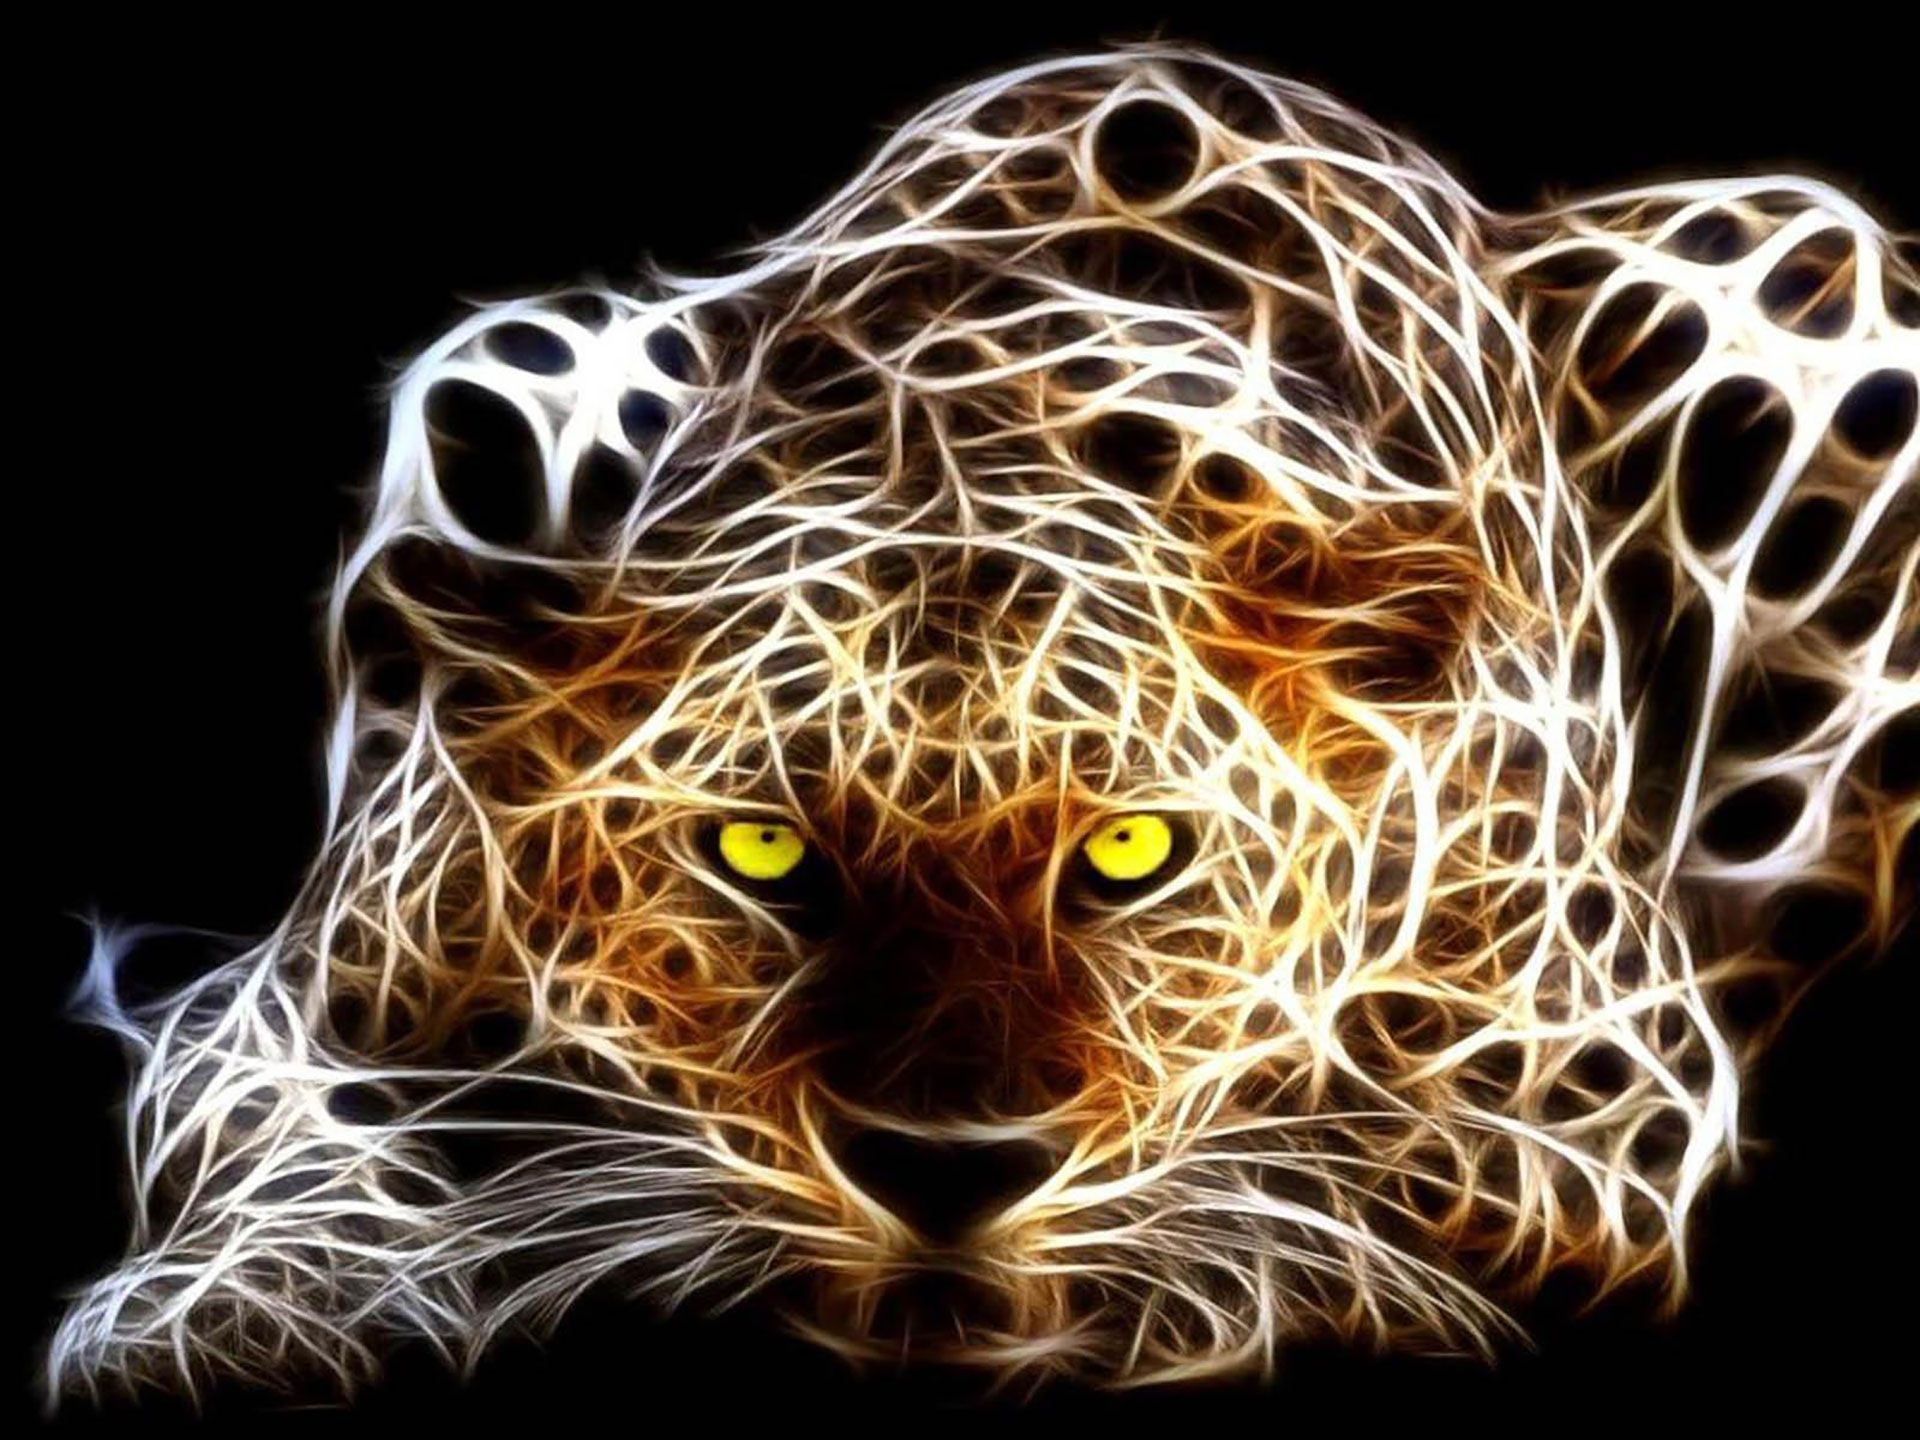 Cool abstract animal wallpapers top free cool abstract - Best animal wallpaper download ...